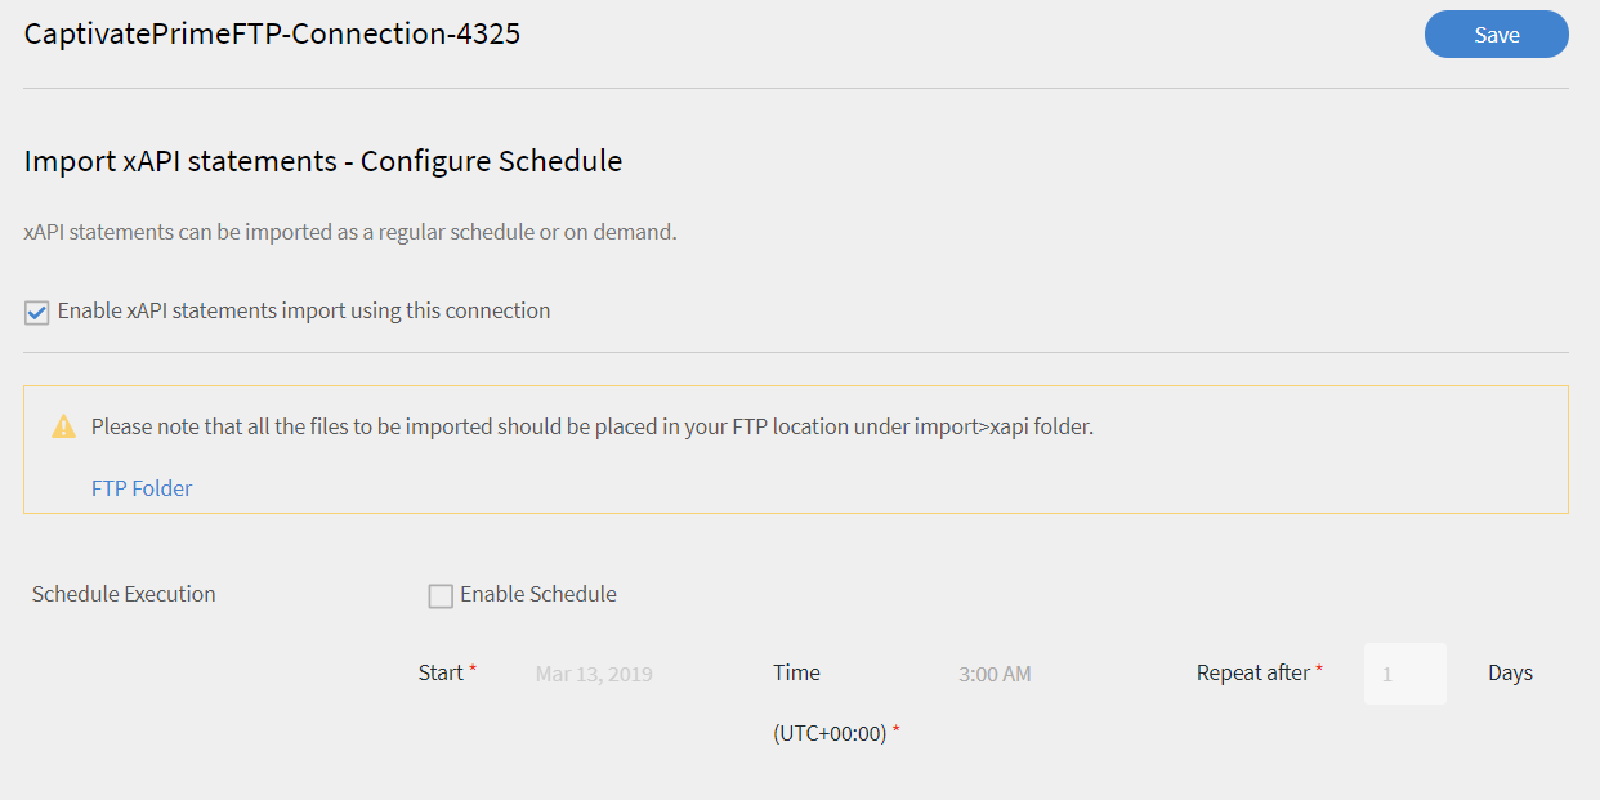 Import xAPI statements - Configure Schedule